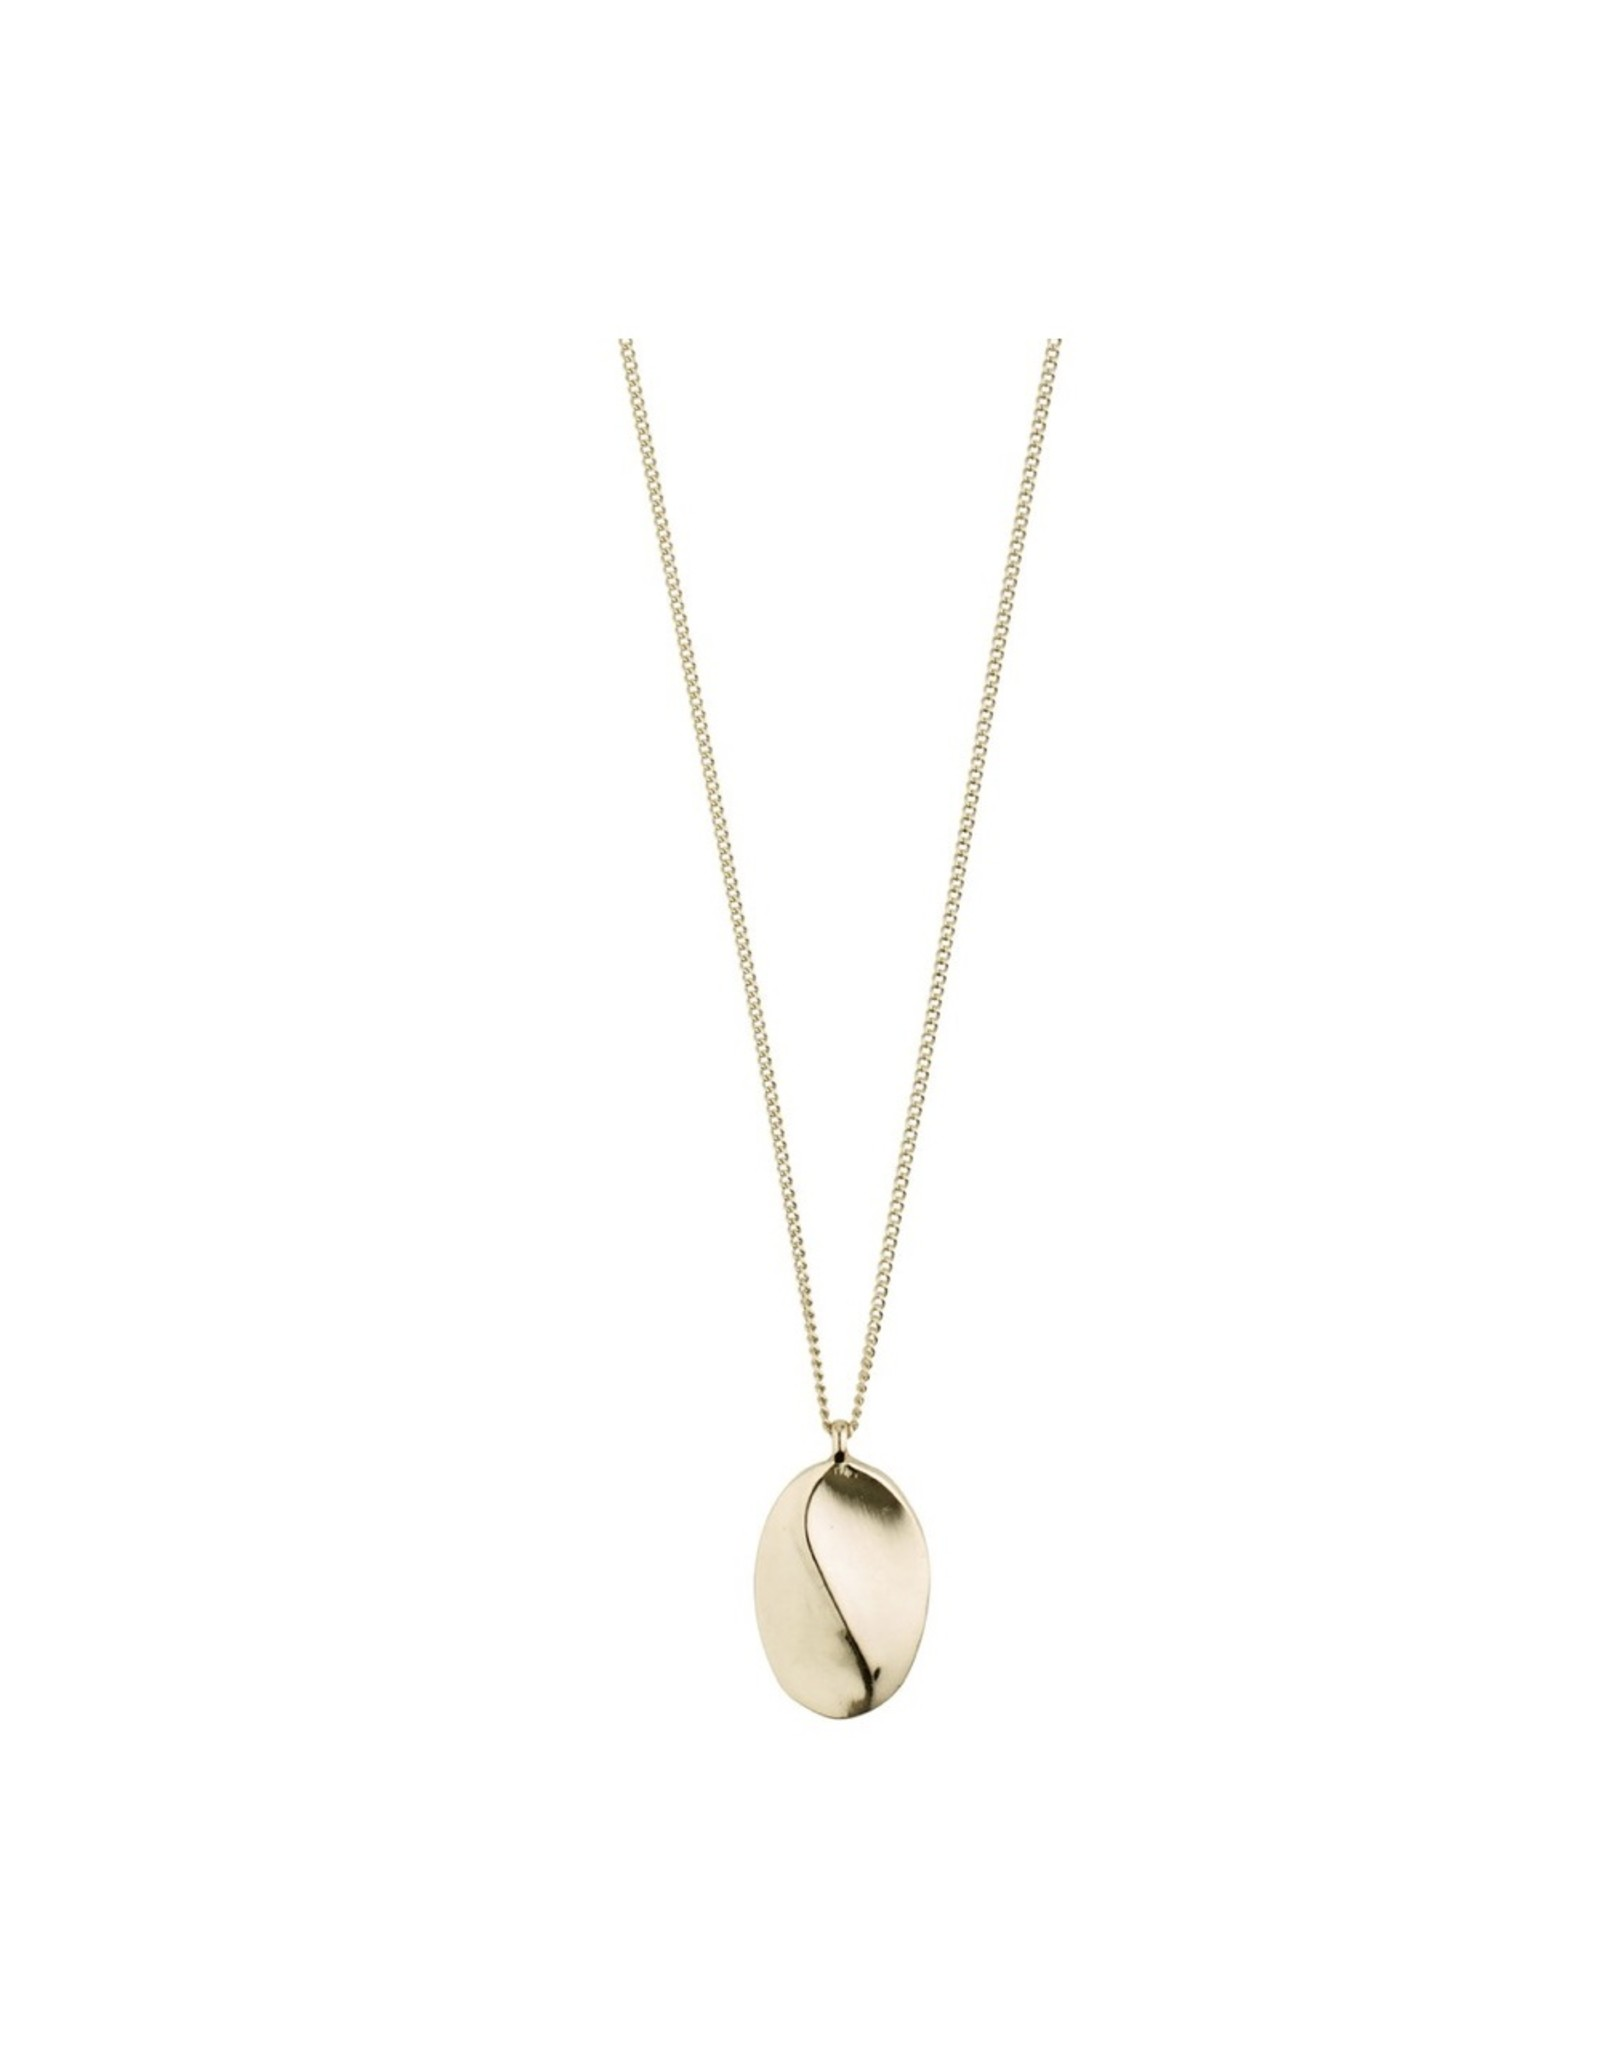 Pilgrim Pilgrim Necklace, Mabelle, Gold Plated